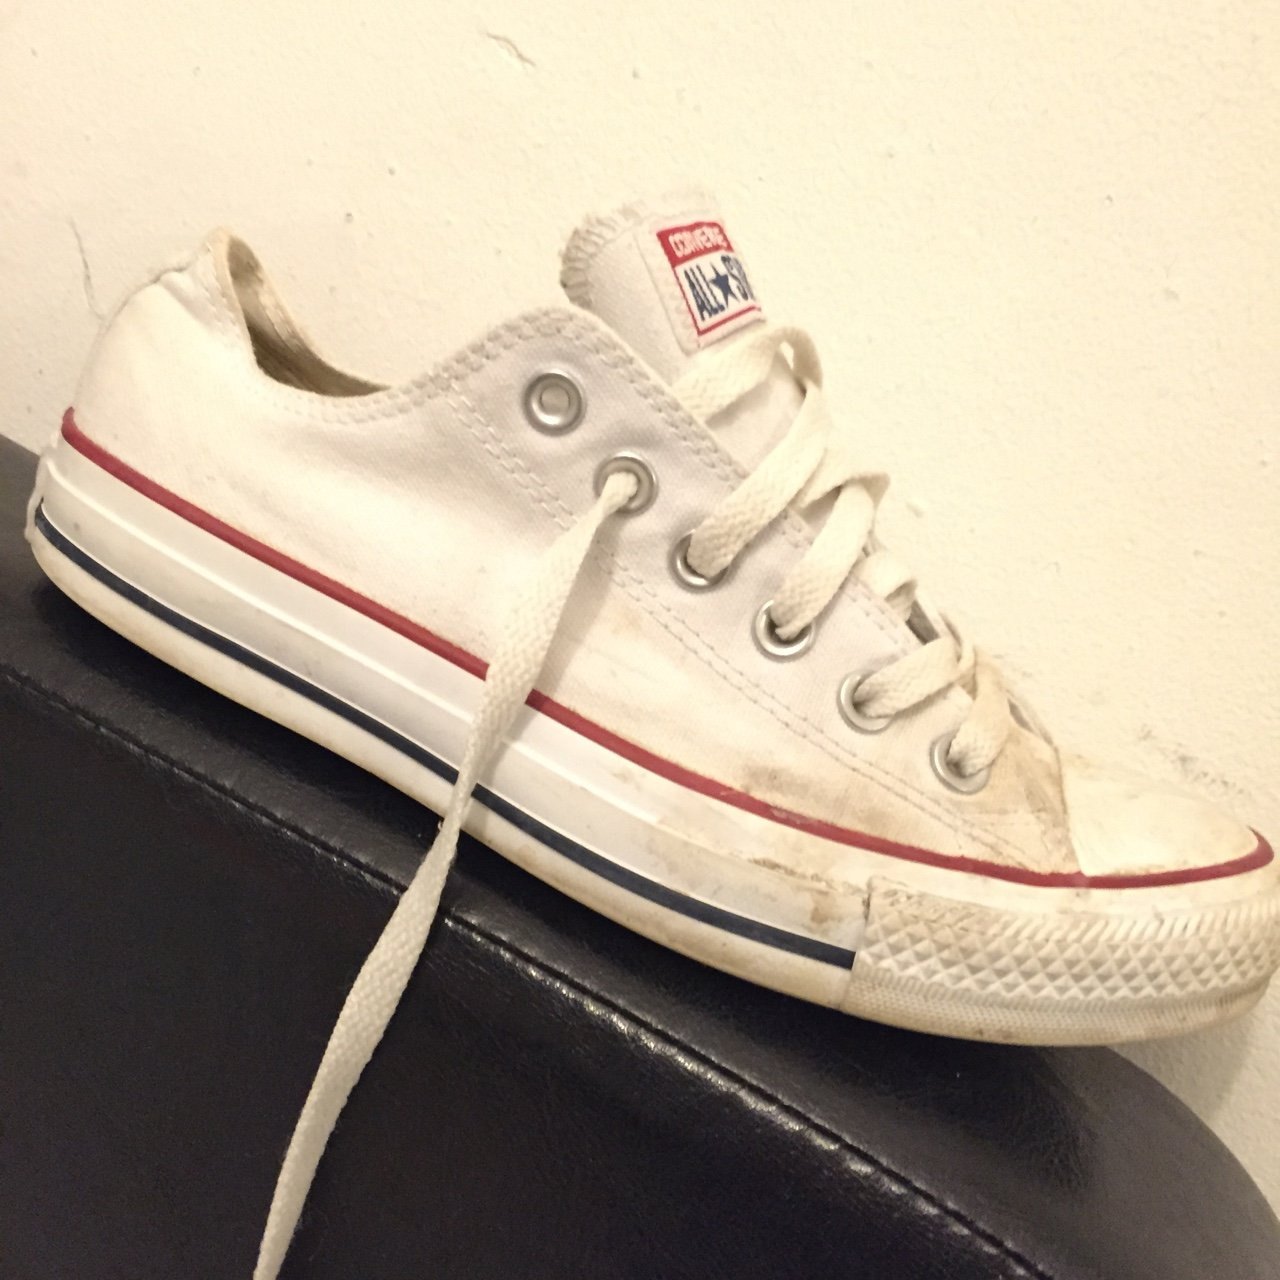 nicolemaxinee. 3 years ago. United Kingdom. white converse size 5 - only  worn these a couple of times 3e7060a0c